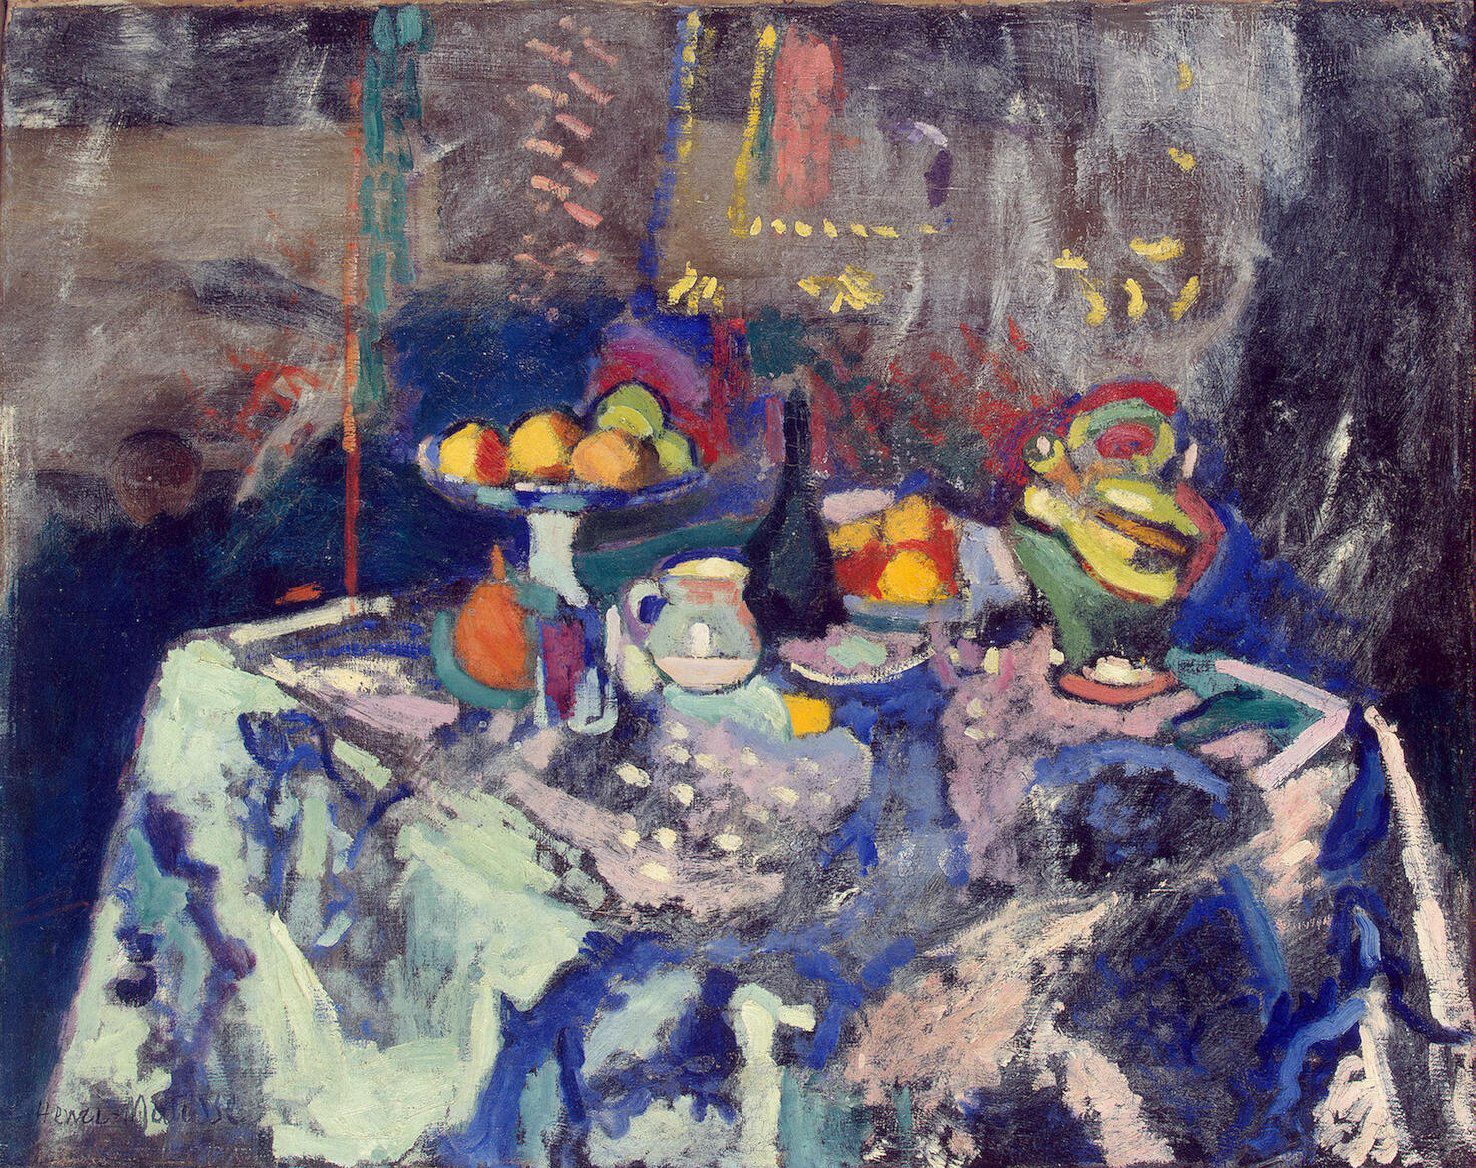 Imagem de https://upload.wikimedia.org/wikipedia/en/c/c5/Matisse_-_Vase,_Bottle_and_Fruit_(1906).jpg.